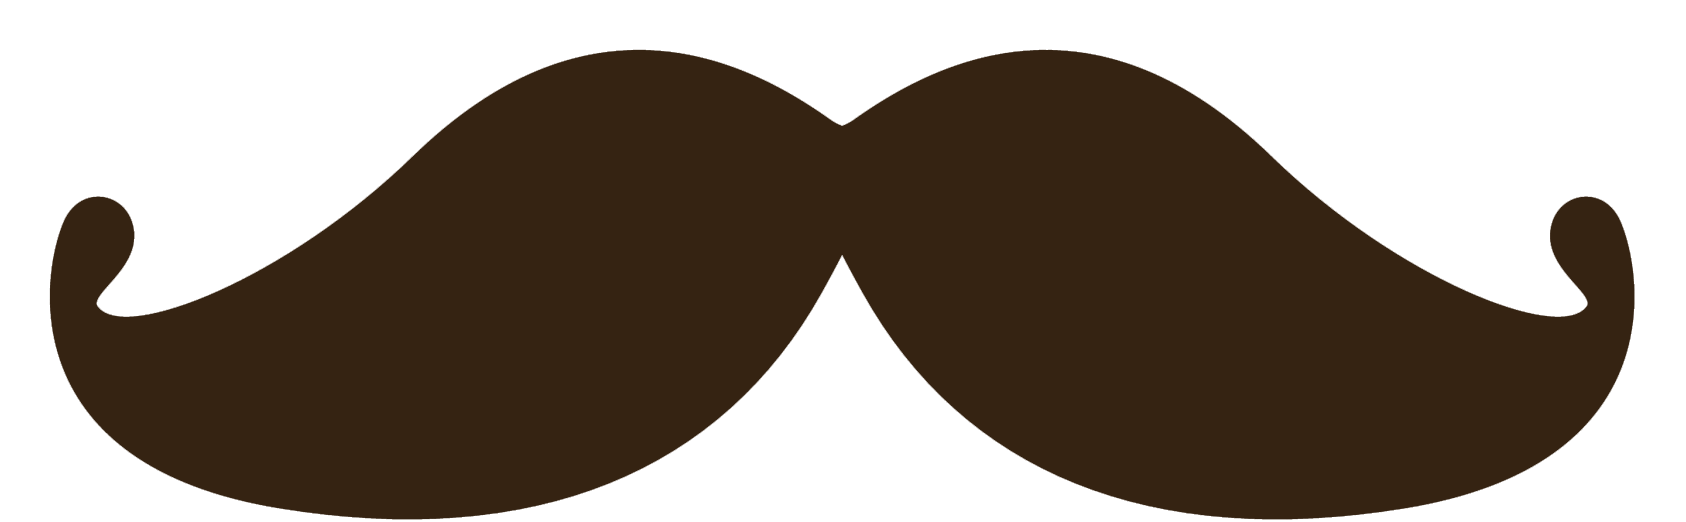 Clipart mustache hipster. Brown hair mexican pencil